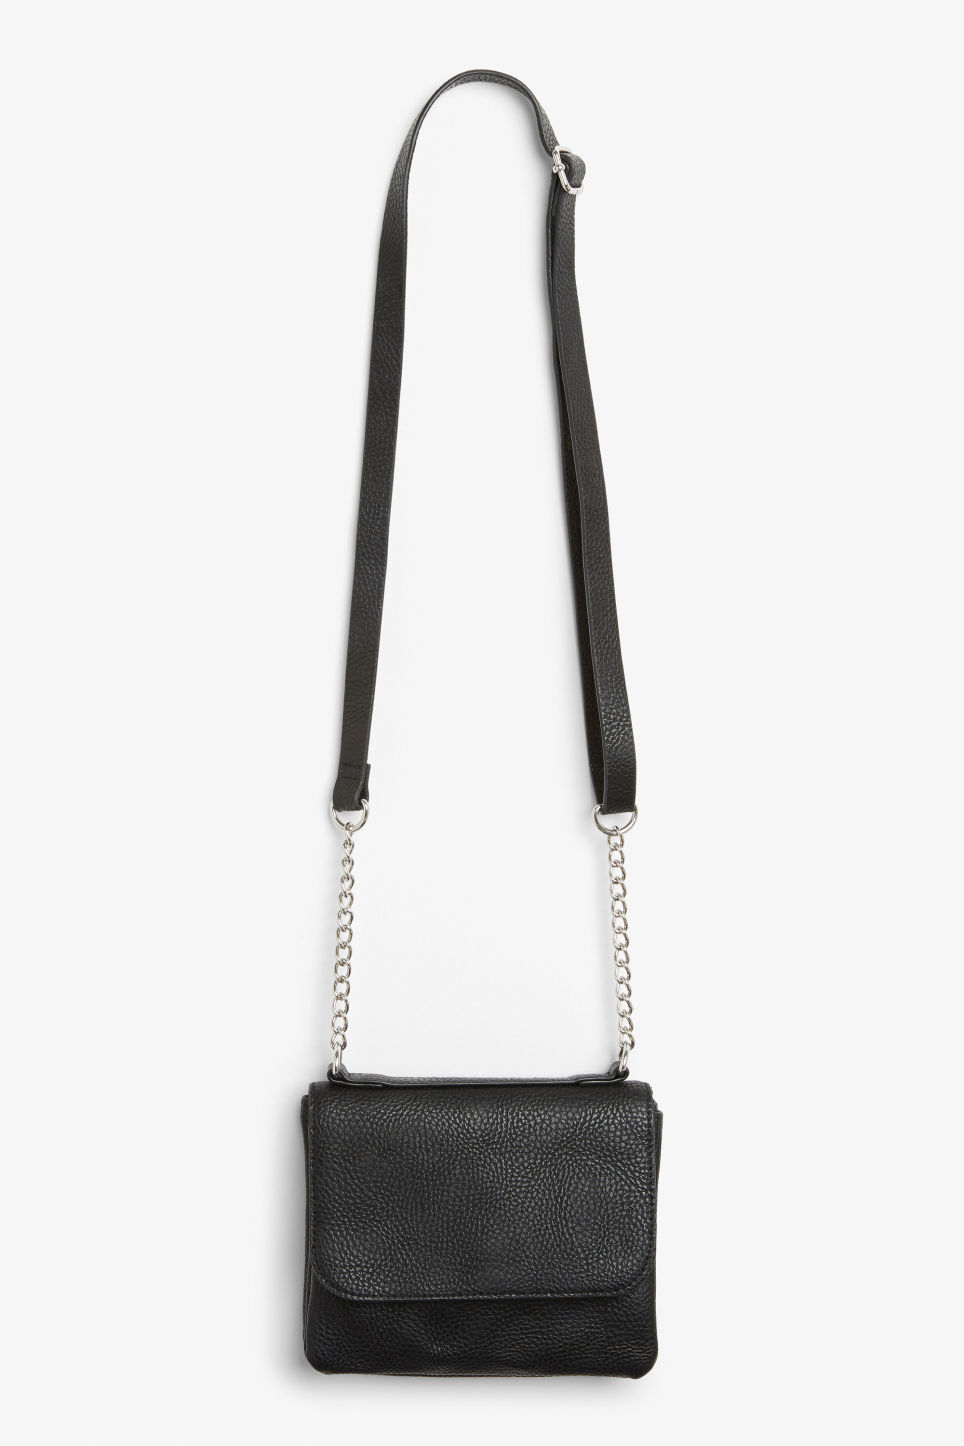 Detailed image of Monki cross shoulder bag in black